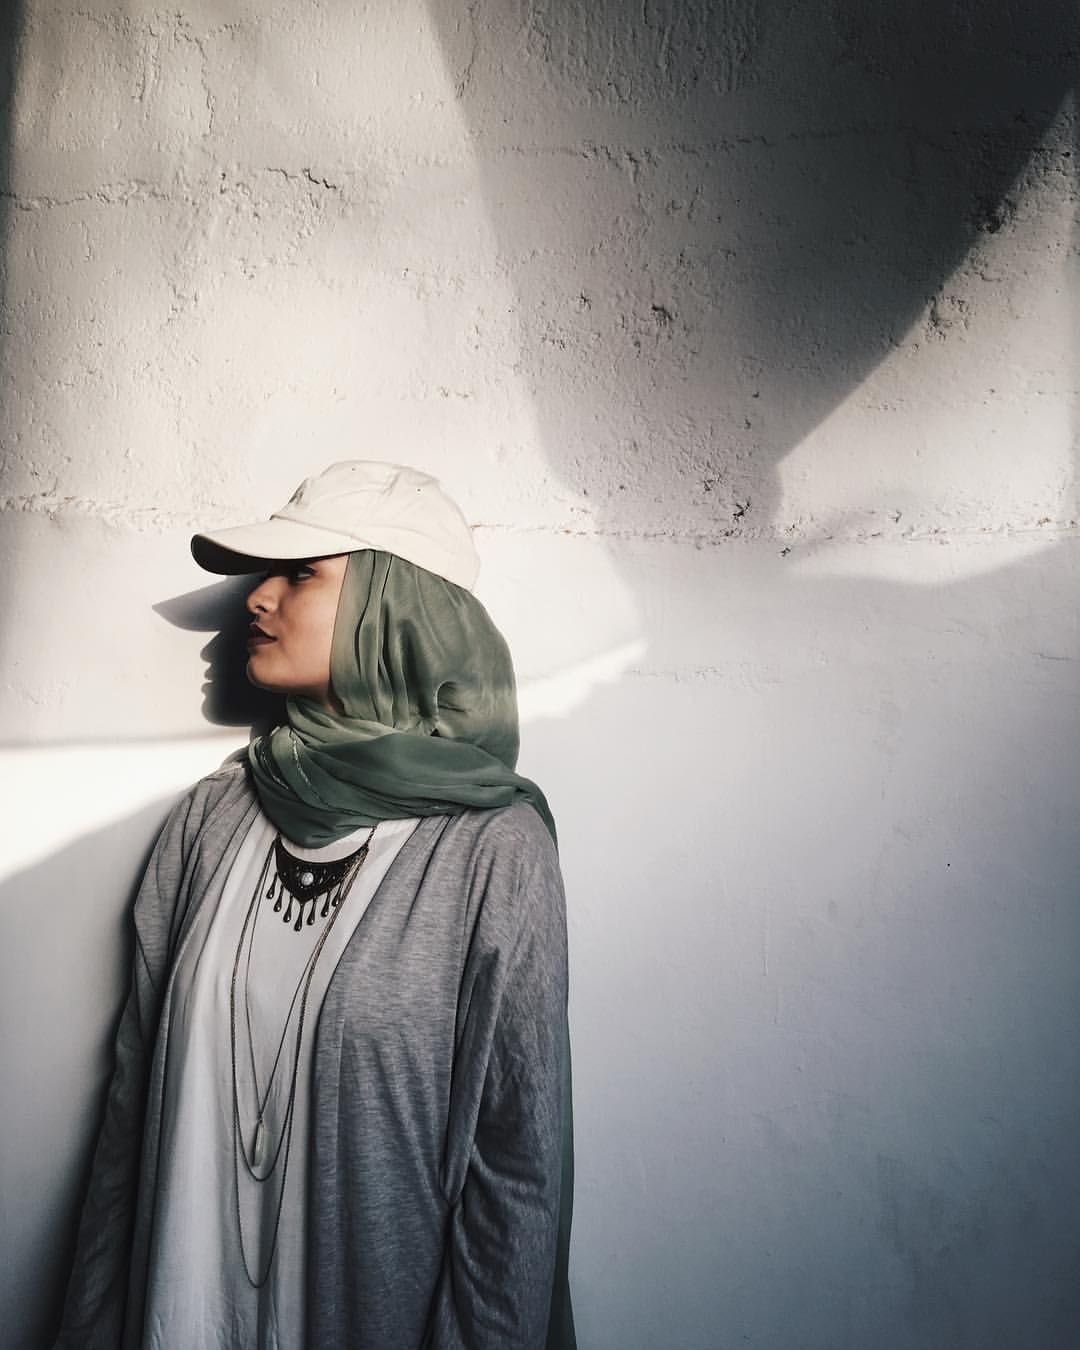 outfit by noor unnahar // modest style, tumblr indie pale grunge hipsters  mipsters aesthetics. Photography IdeasPortrait PhotographyHijab ...